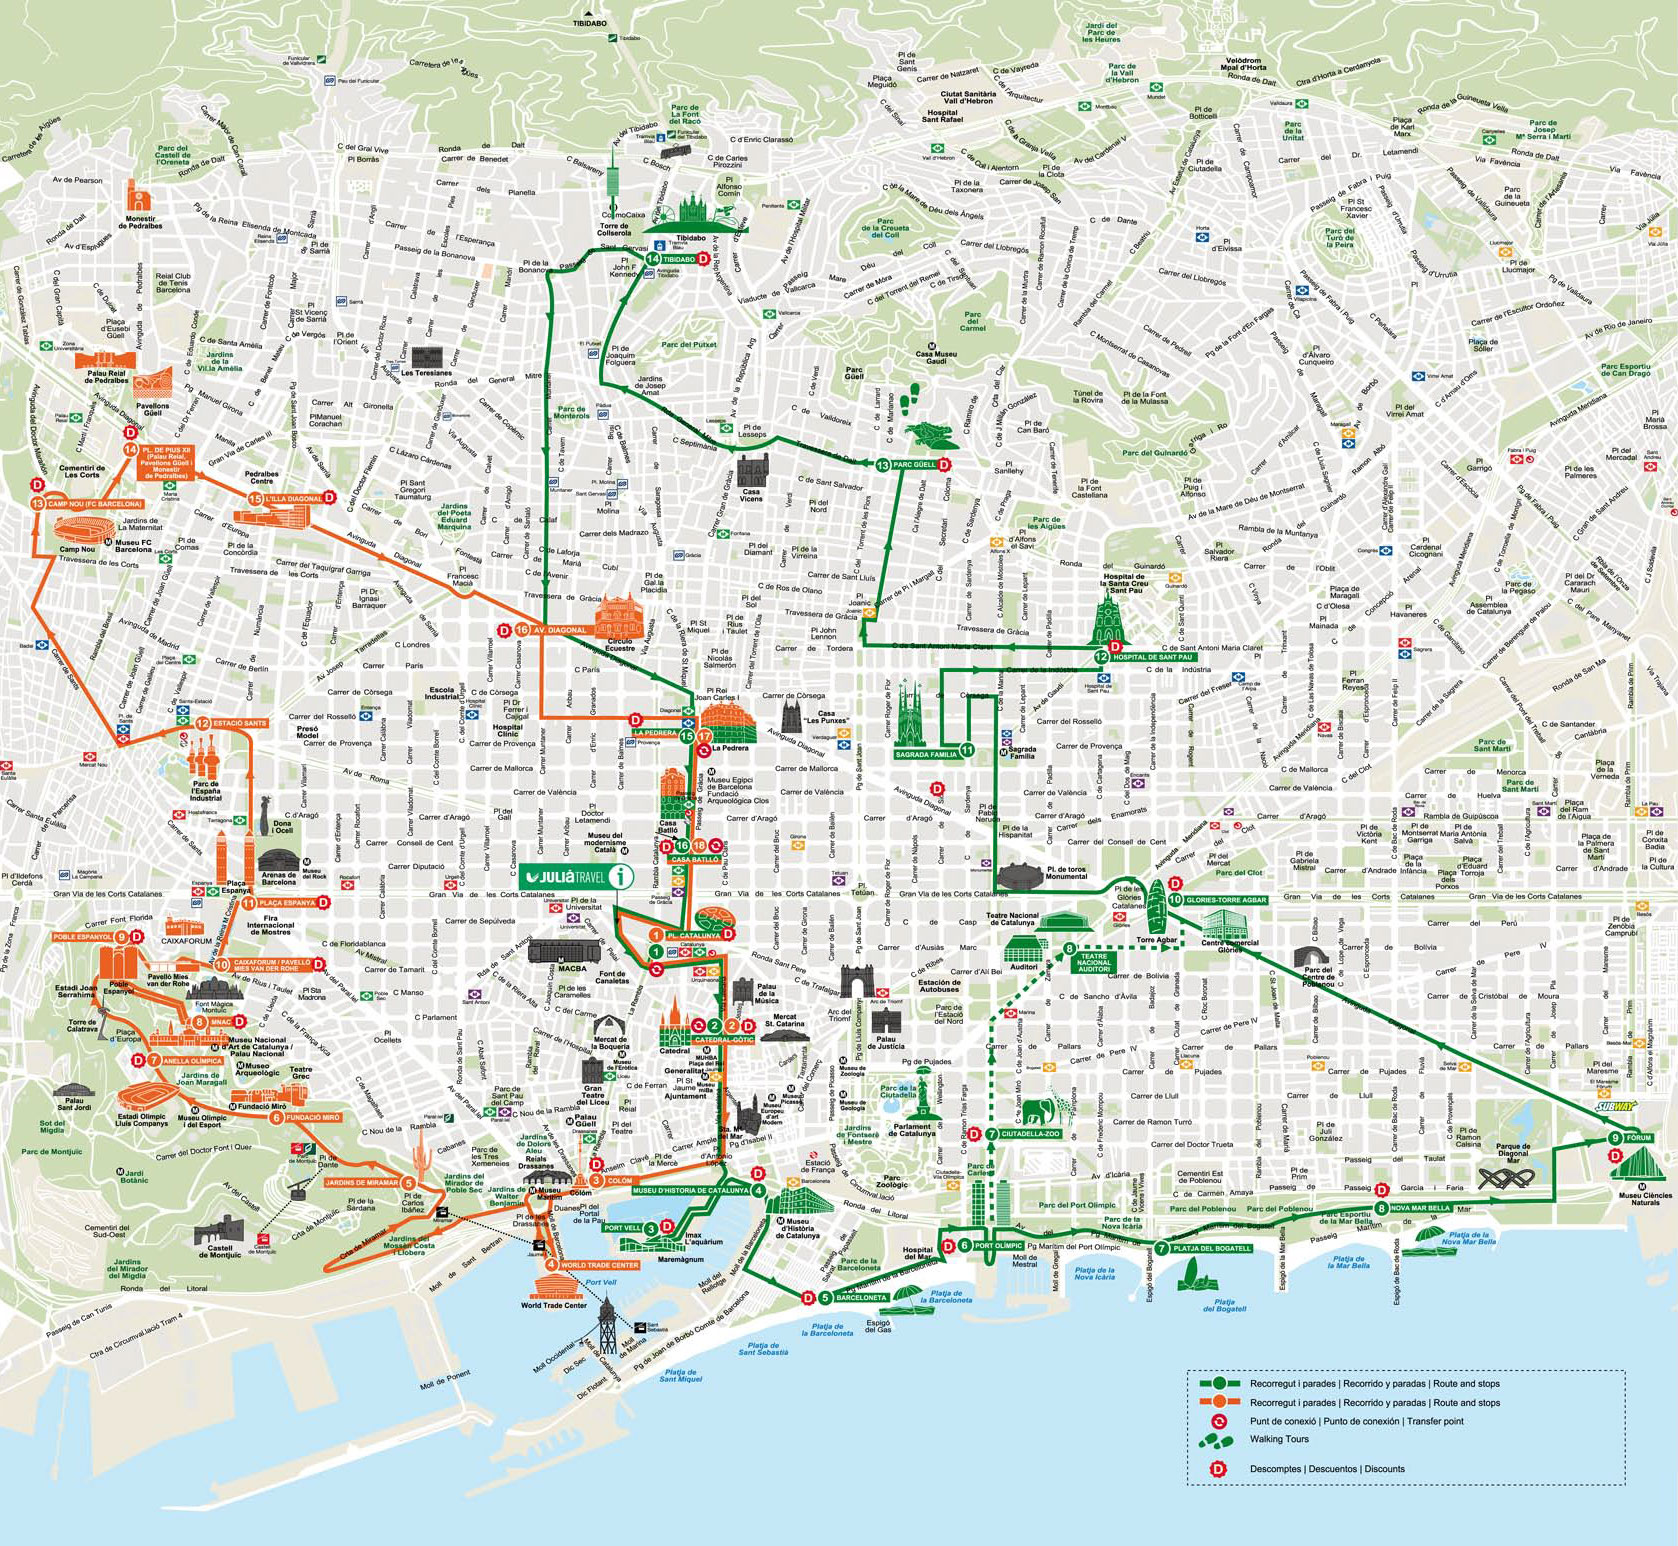 new york city sightseeing map pdf with Carte Touristique Barcelone on 805651820810192813 also Istanbul Tourist Map additionally Detailed Tourist Map Of Bergen City Norway as well Malta Travel Guide also Map Laminated Manhattan Eco Friendly Waterproof Pocket.